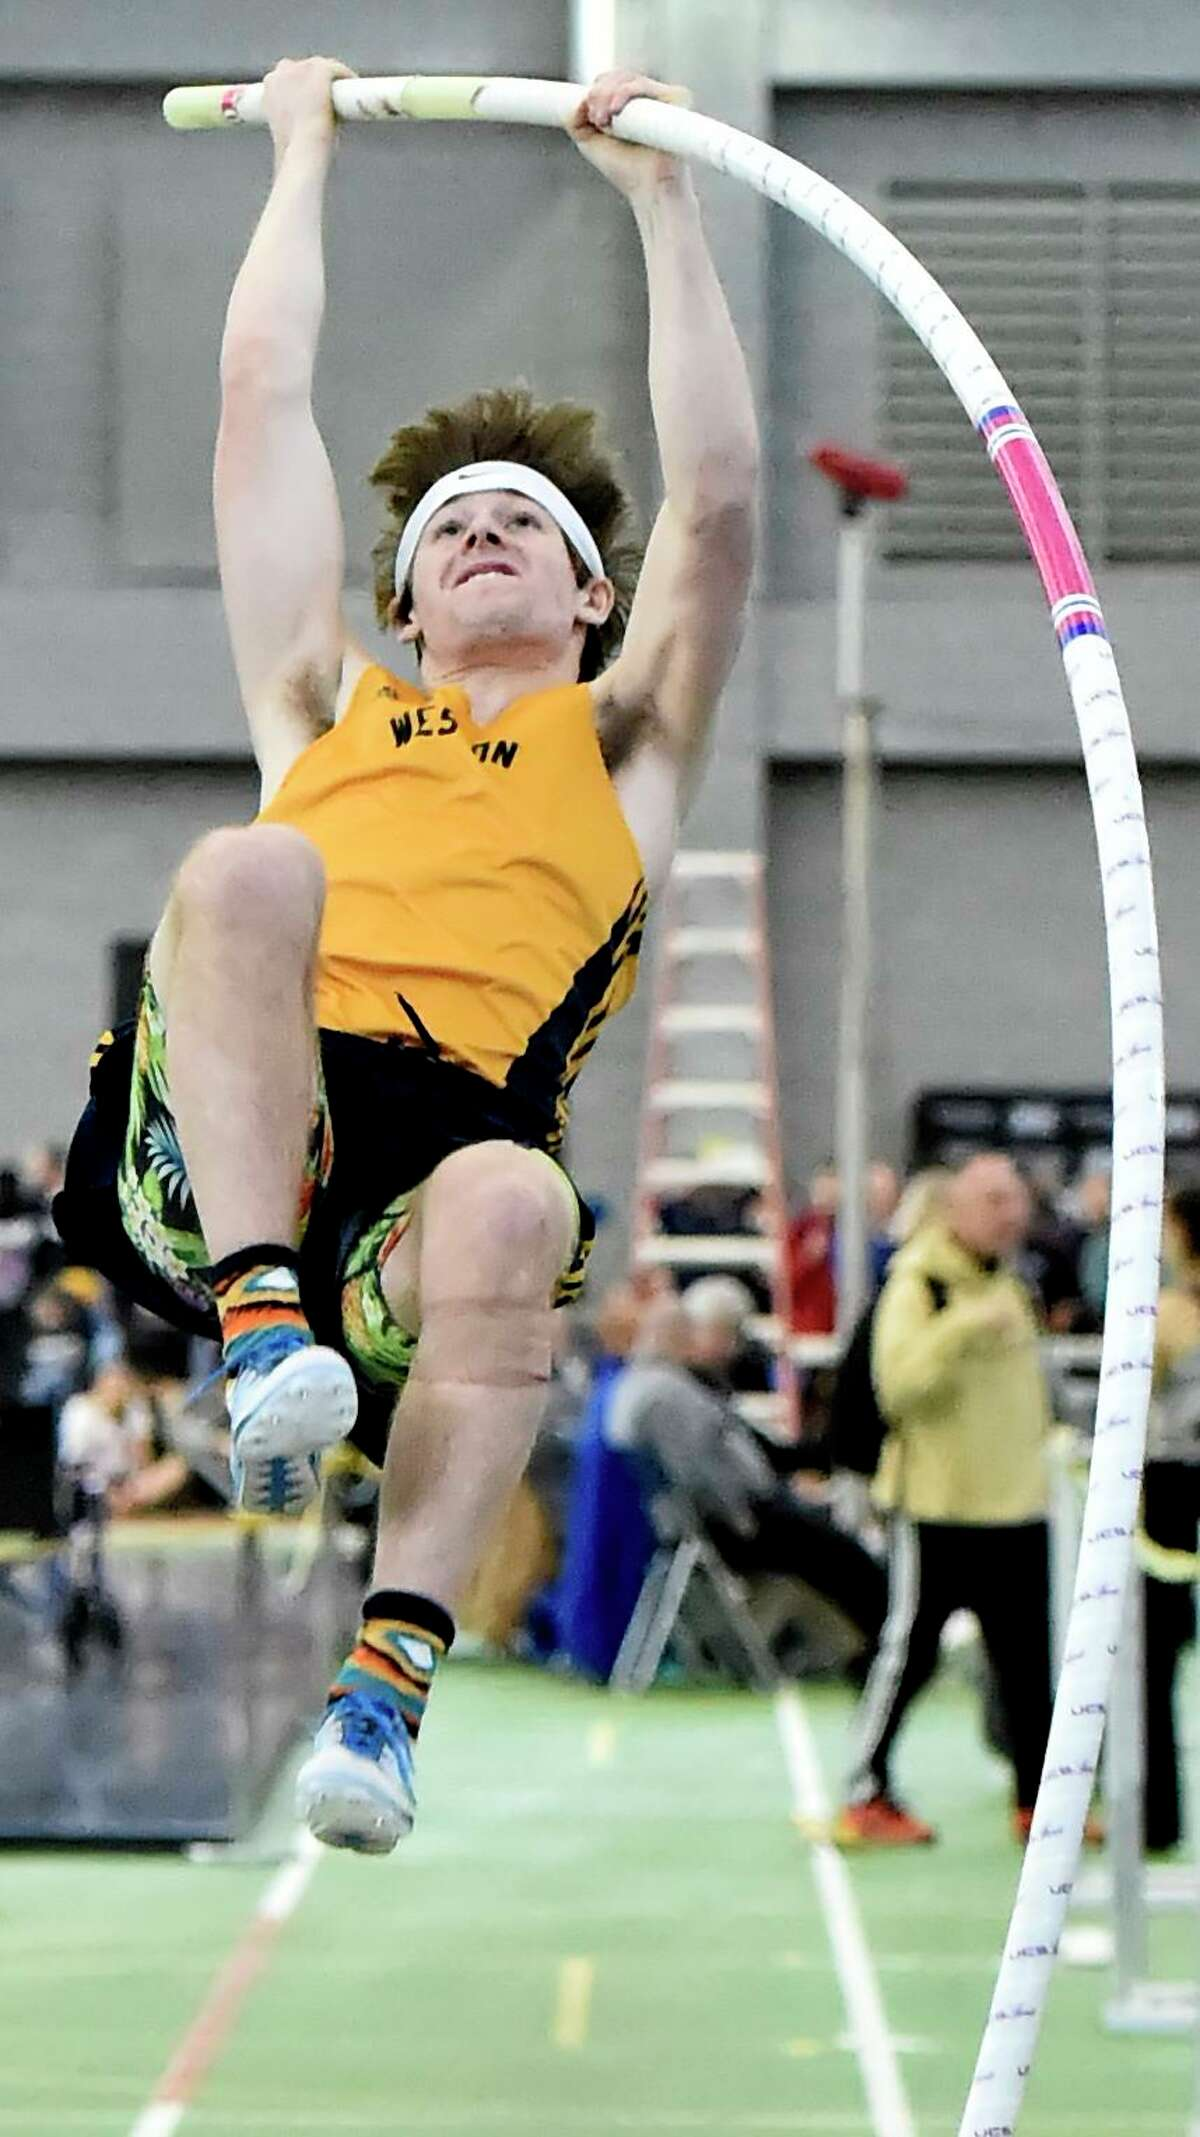 New Haven Connecticut - February 22, 2020: Matthew Bigelow of Weston H.S. wins the pole-vault during the CIAC State Open Indoor Track Championship Saturday at the Floyd Little Athletic Center in New Haven.